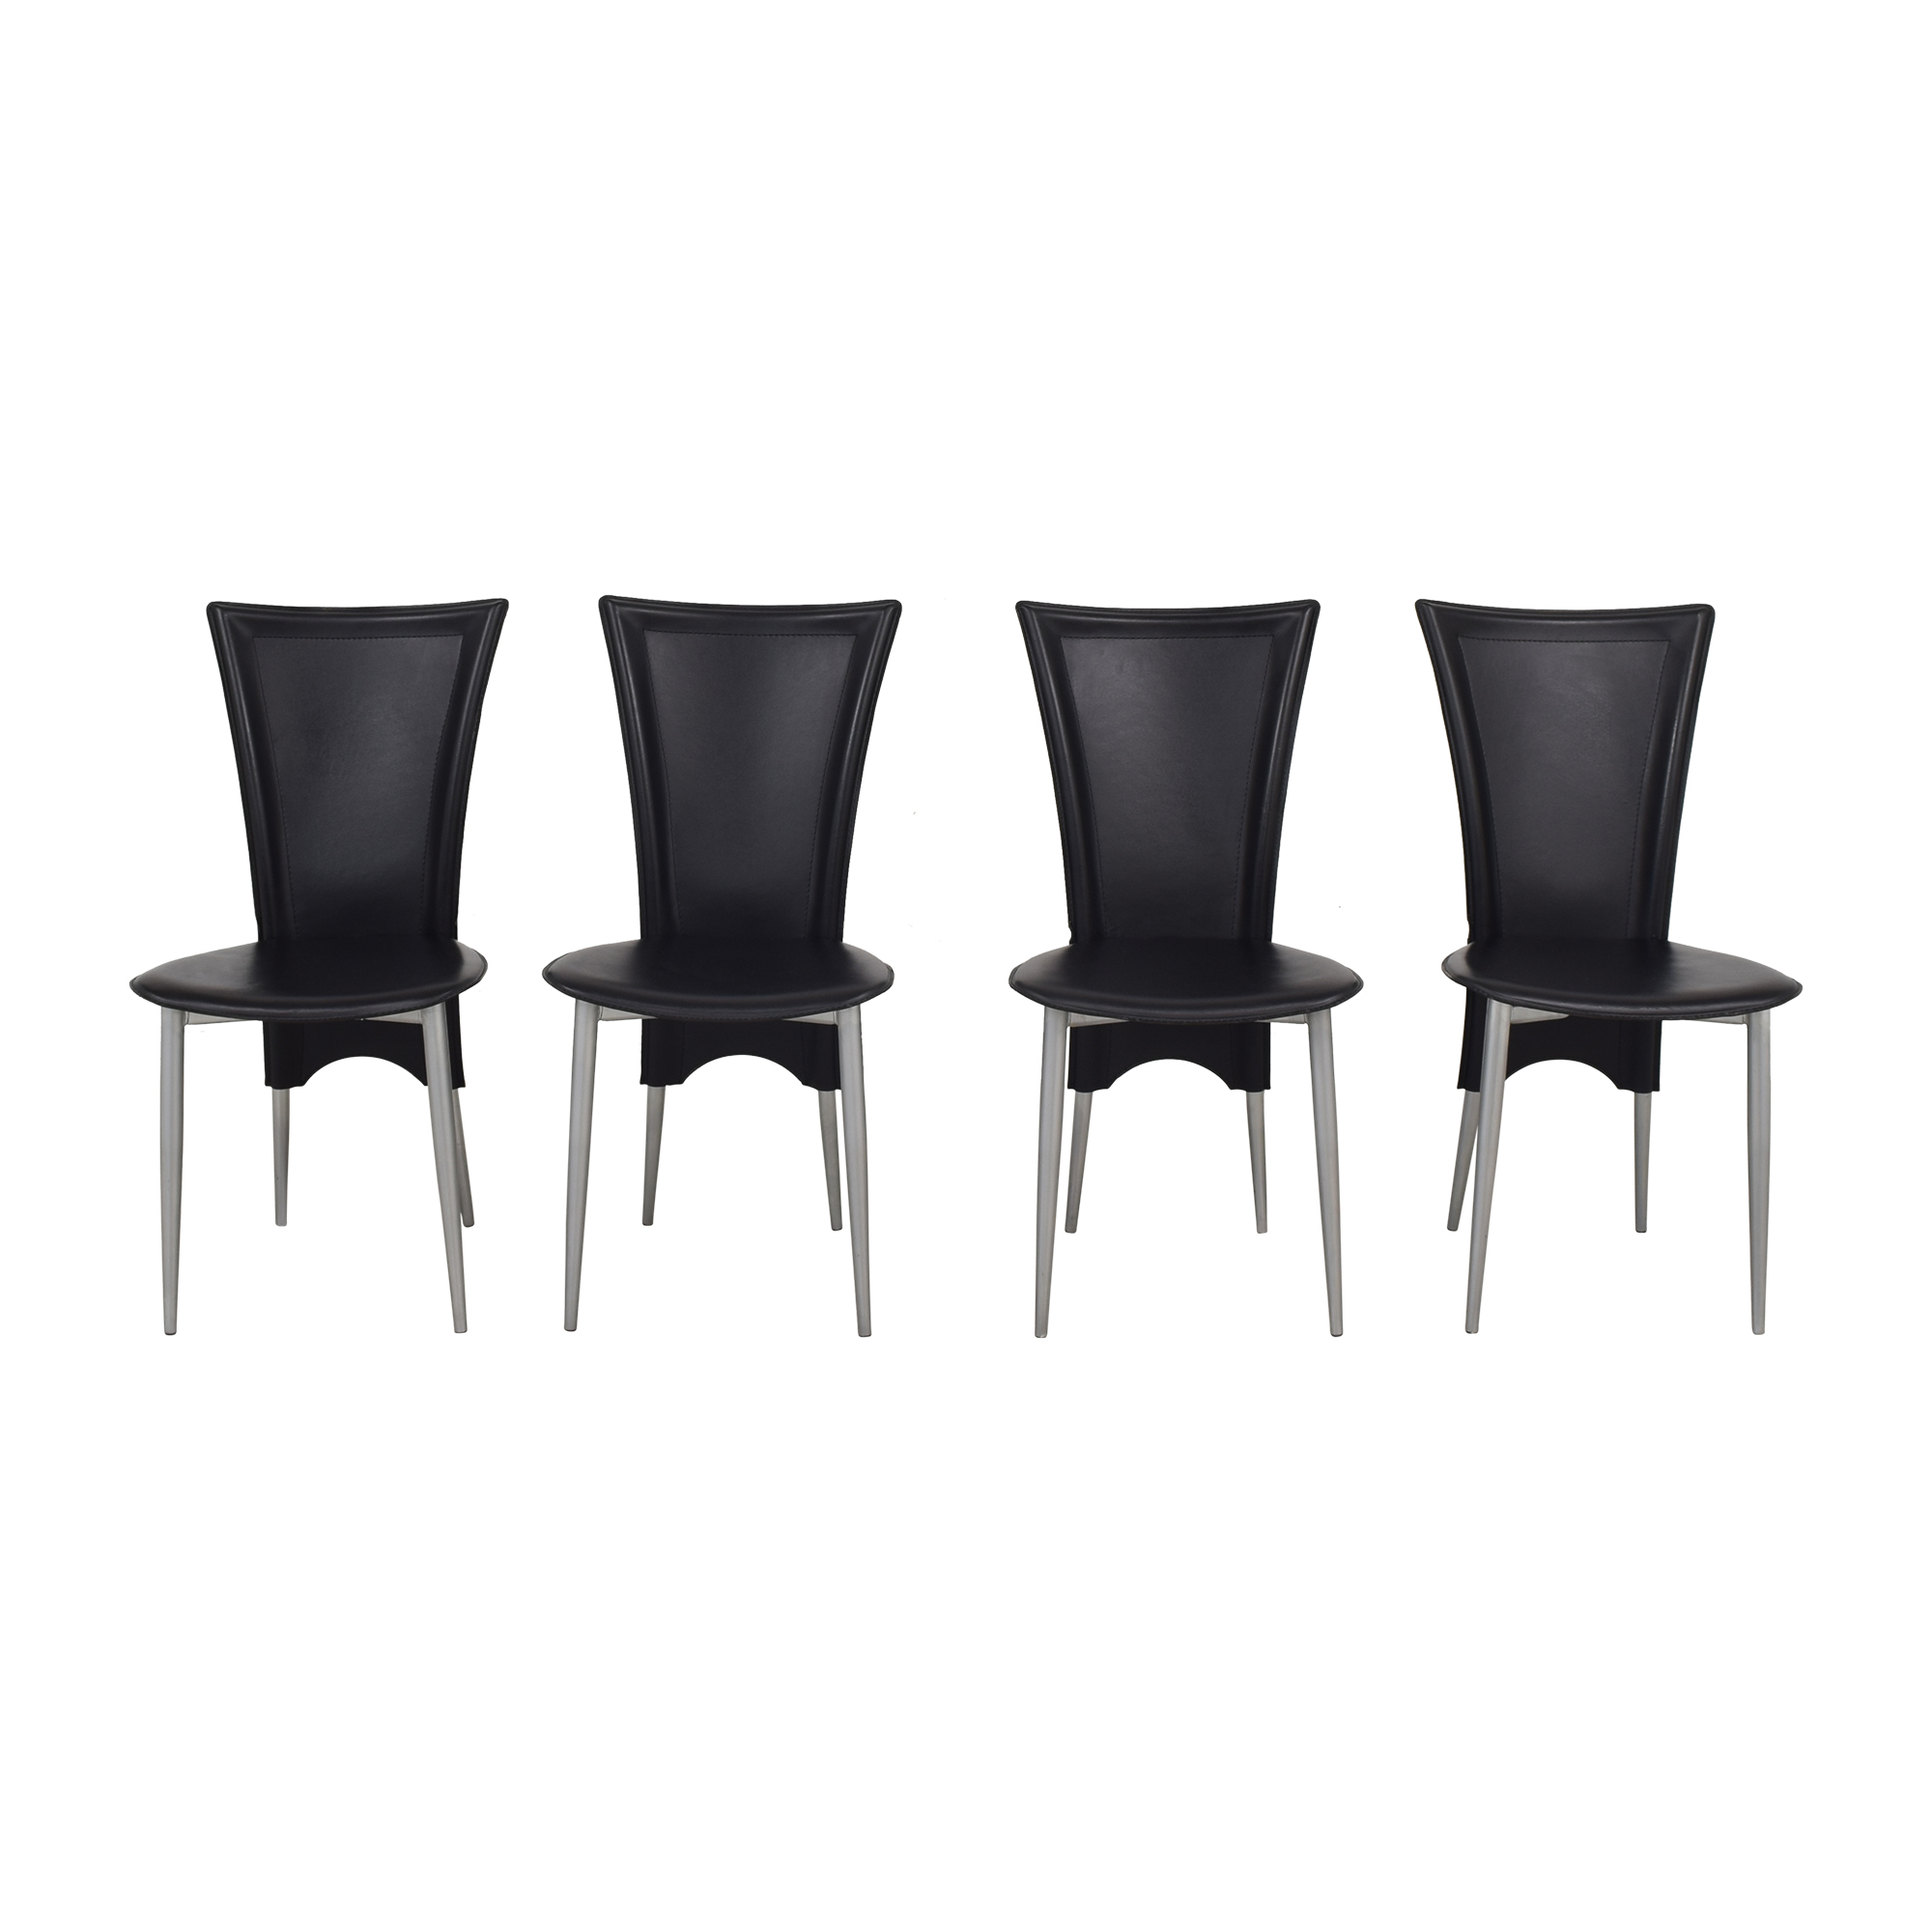 Modern Dining Chairs ma